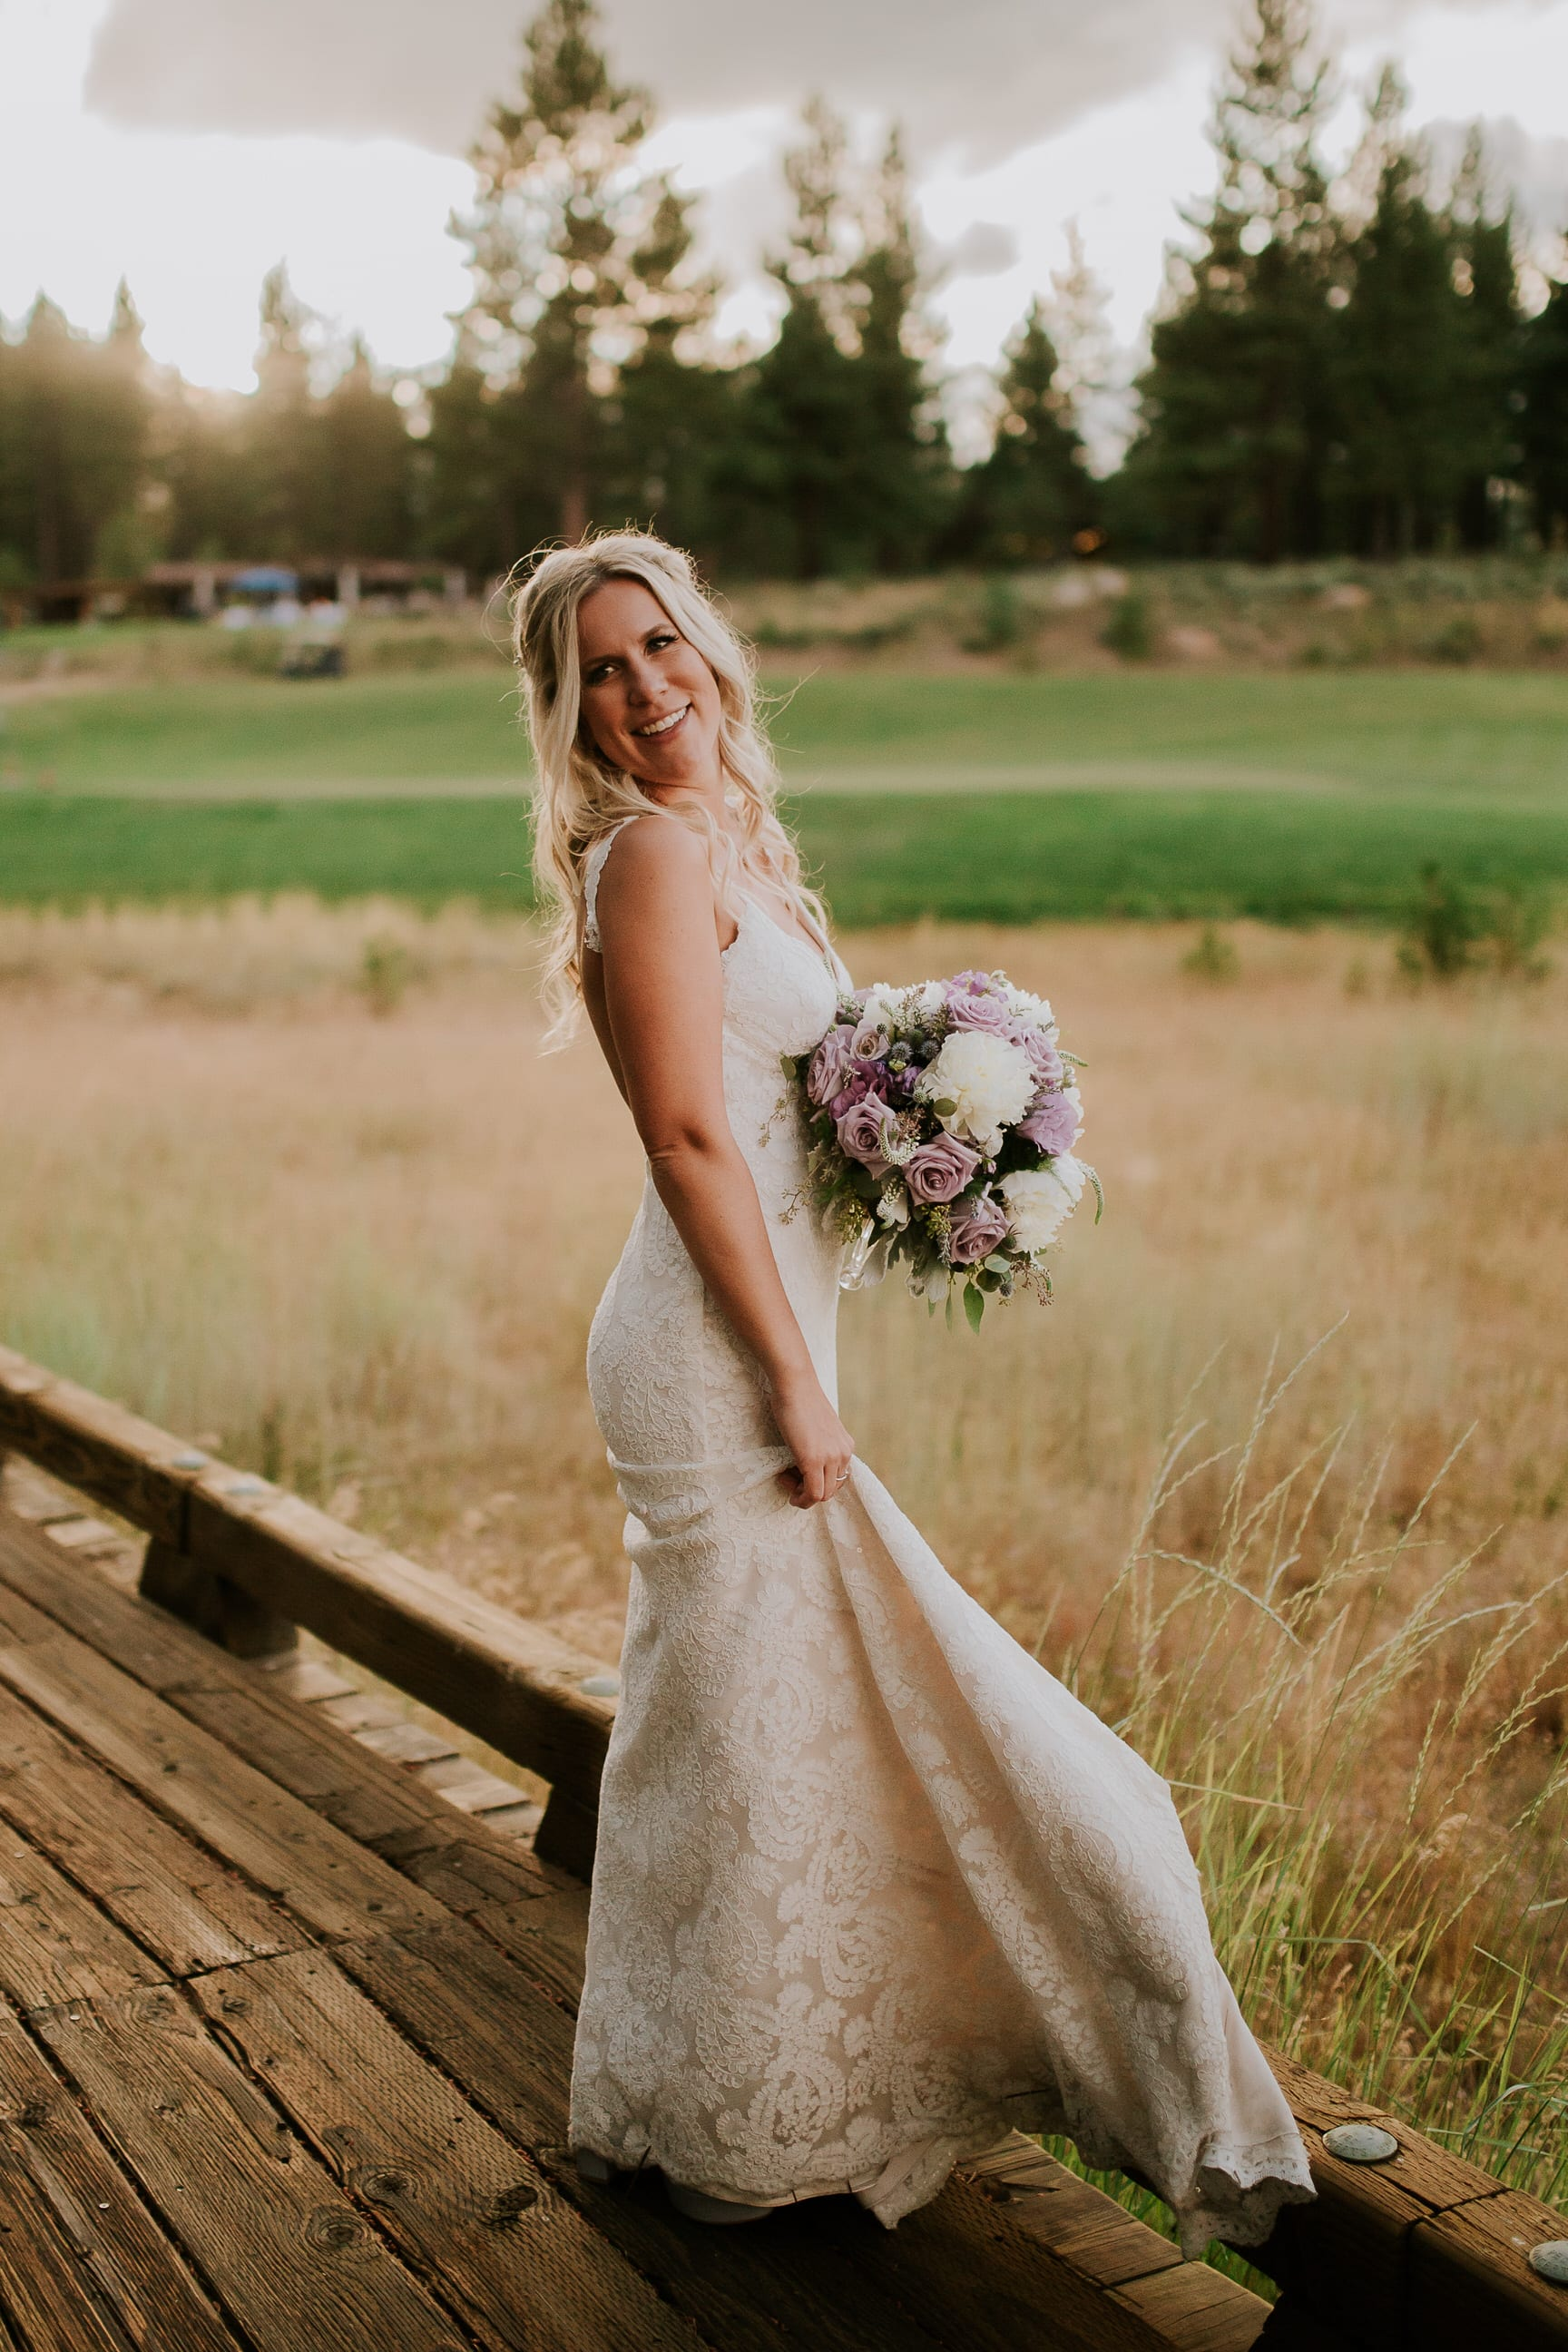 Bride and groom portraits at Gray's Crossing Lake Tahoe California wedding venue